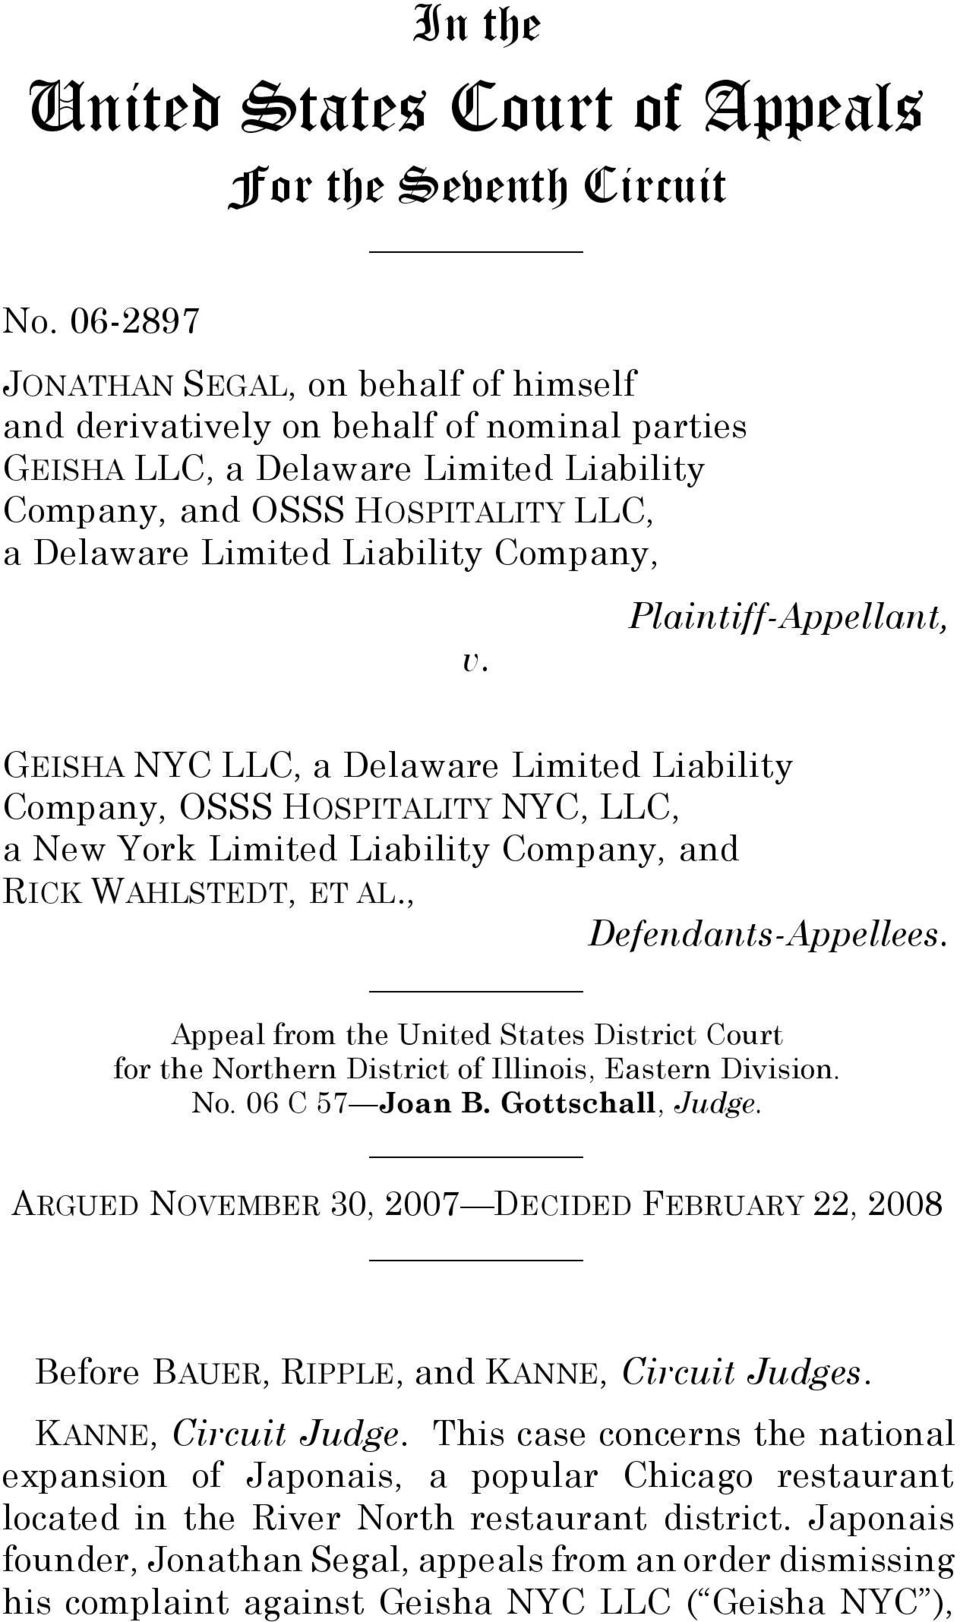 Company, v. Plaintiff-Appellant, GEISHA NYC LLC, a Delaware Limited Liability Company, OSSS HOSPITALITY NYC, LLC, a New York Limited Liability Company, and RICK WAHLSTEDT, ET AL.